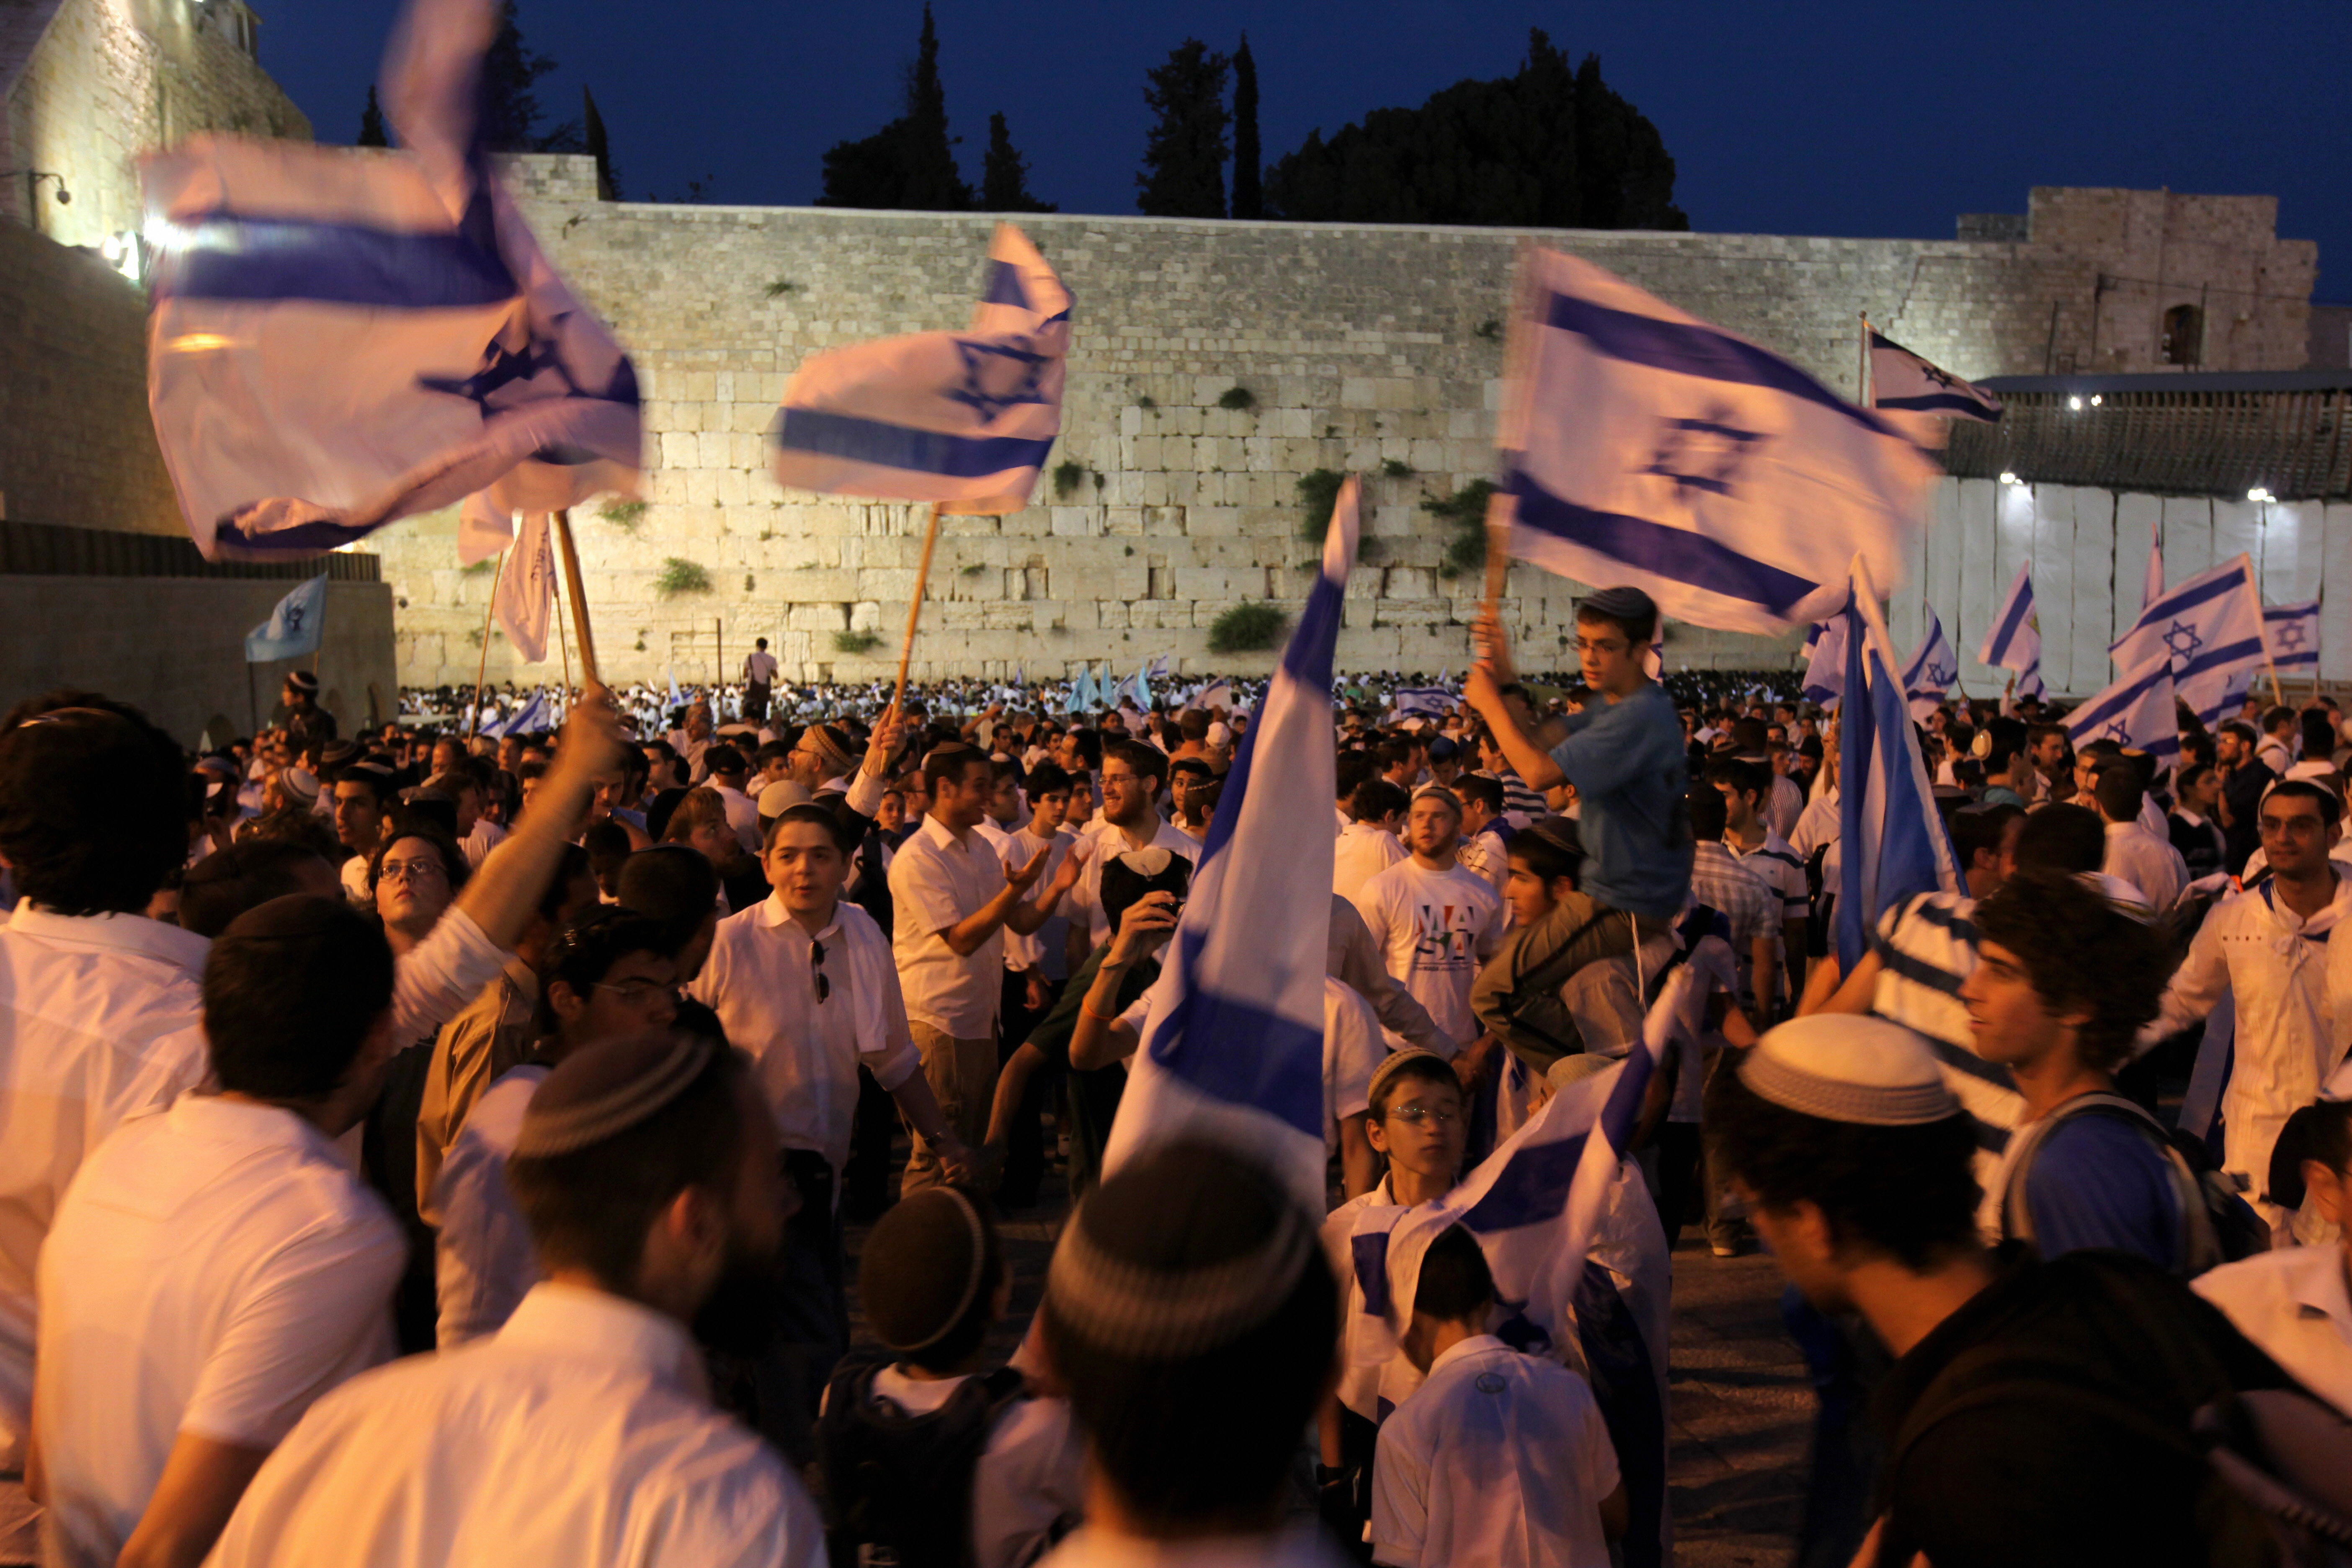 MENAHEM KAHANA/AFP/Getty Images. Young Israelis dance with national flags in hand at the Western Wall, Judaism's holiest site, in Jerusalem's Old City during celebrations on May 21, 2009 of Jerusalem Day which marks the anniversary of the reunification of the holy city. Right-wing Prime Minister Benjamin Netanyahu vowed that Jerusalem would remain Israel's capital 'forever' as the Jewish state marked the 42nd anniversary of the occupation and annexation of Arab east Jerusalem in the 1967 six day Arab-Israeli war.